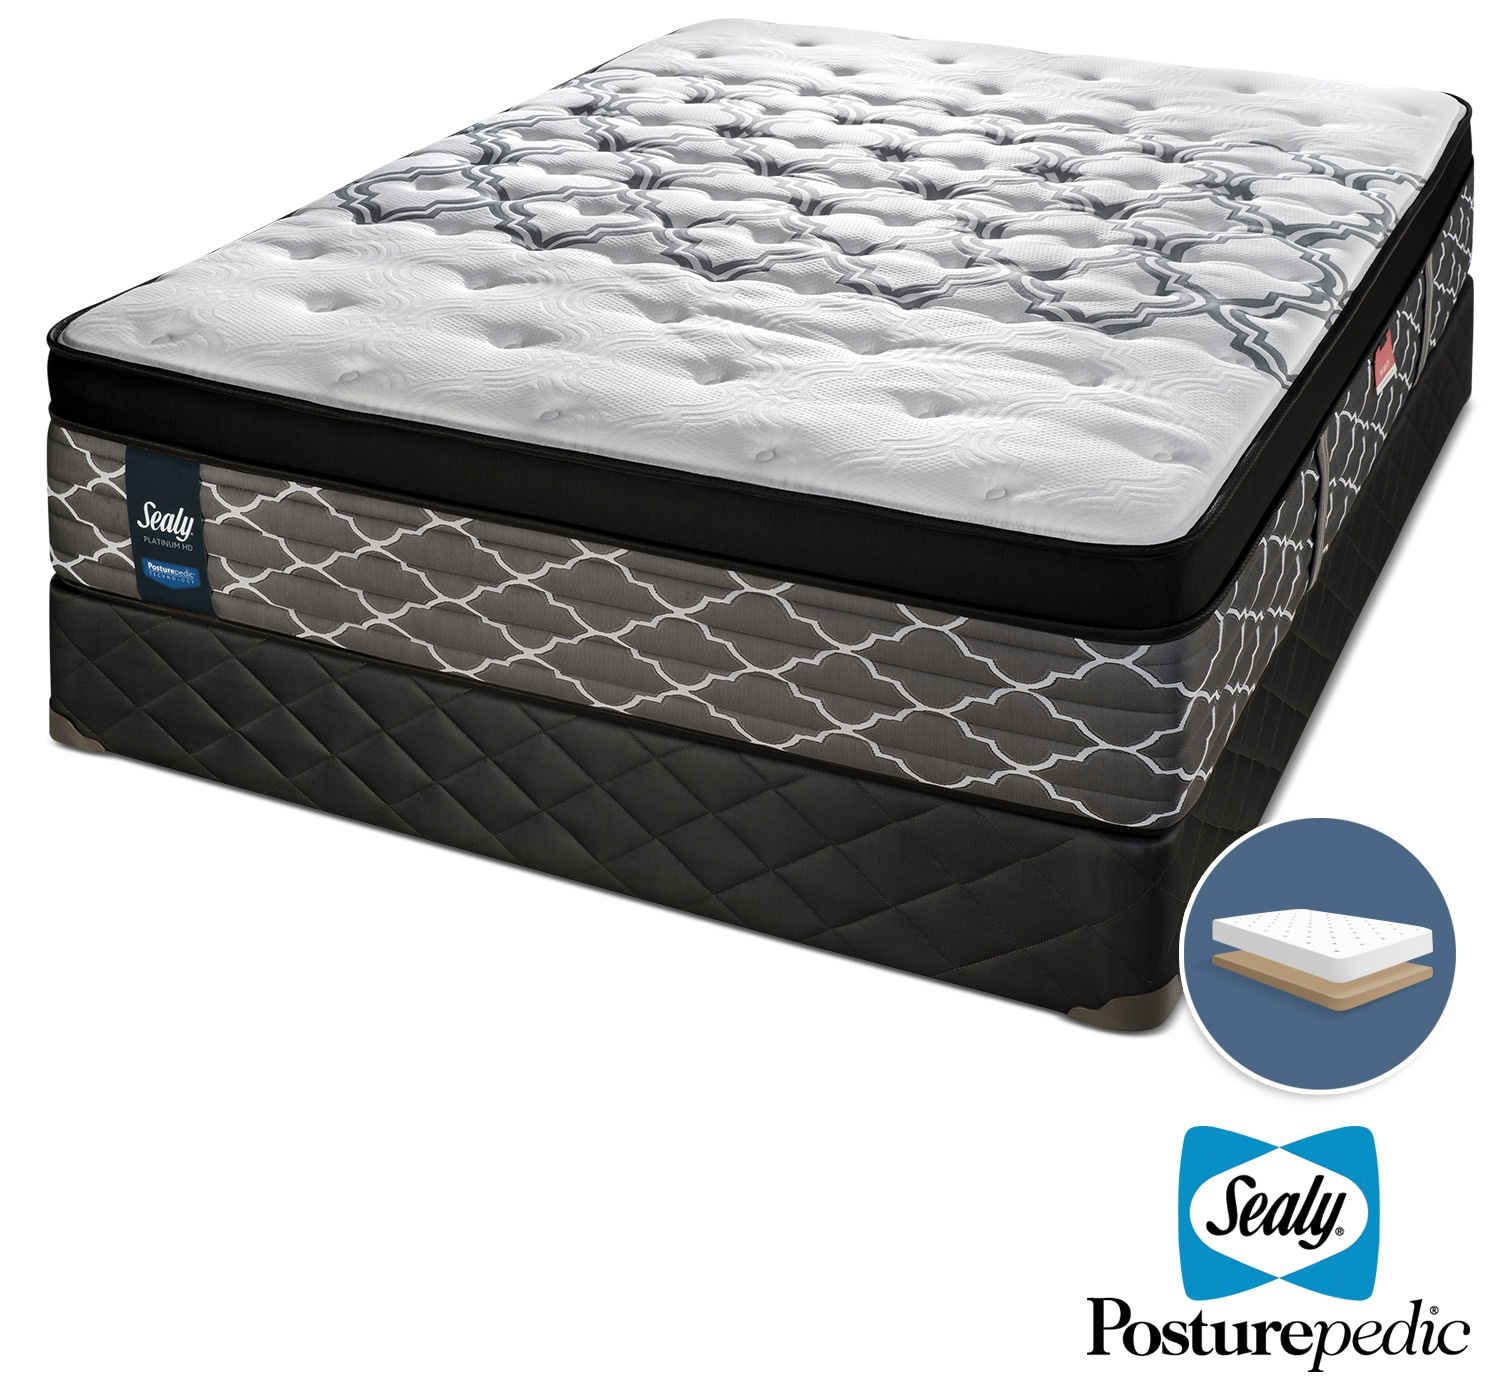 Sealy Dreamy Night Hybrid Firm Full Mattress and Low-Profile Boxspring Set